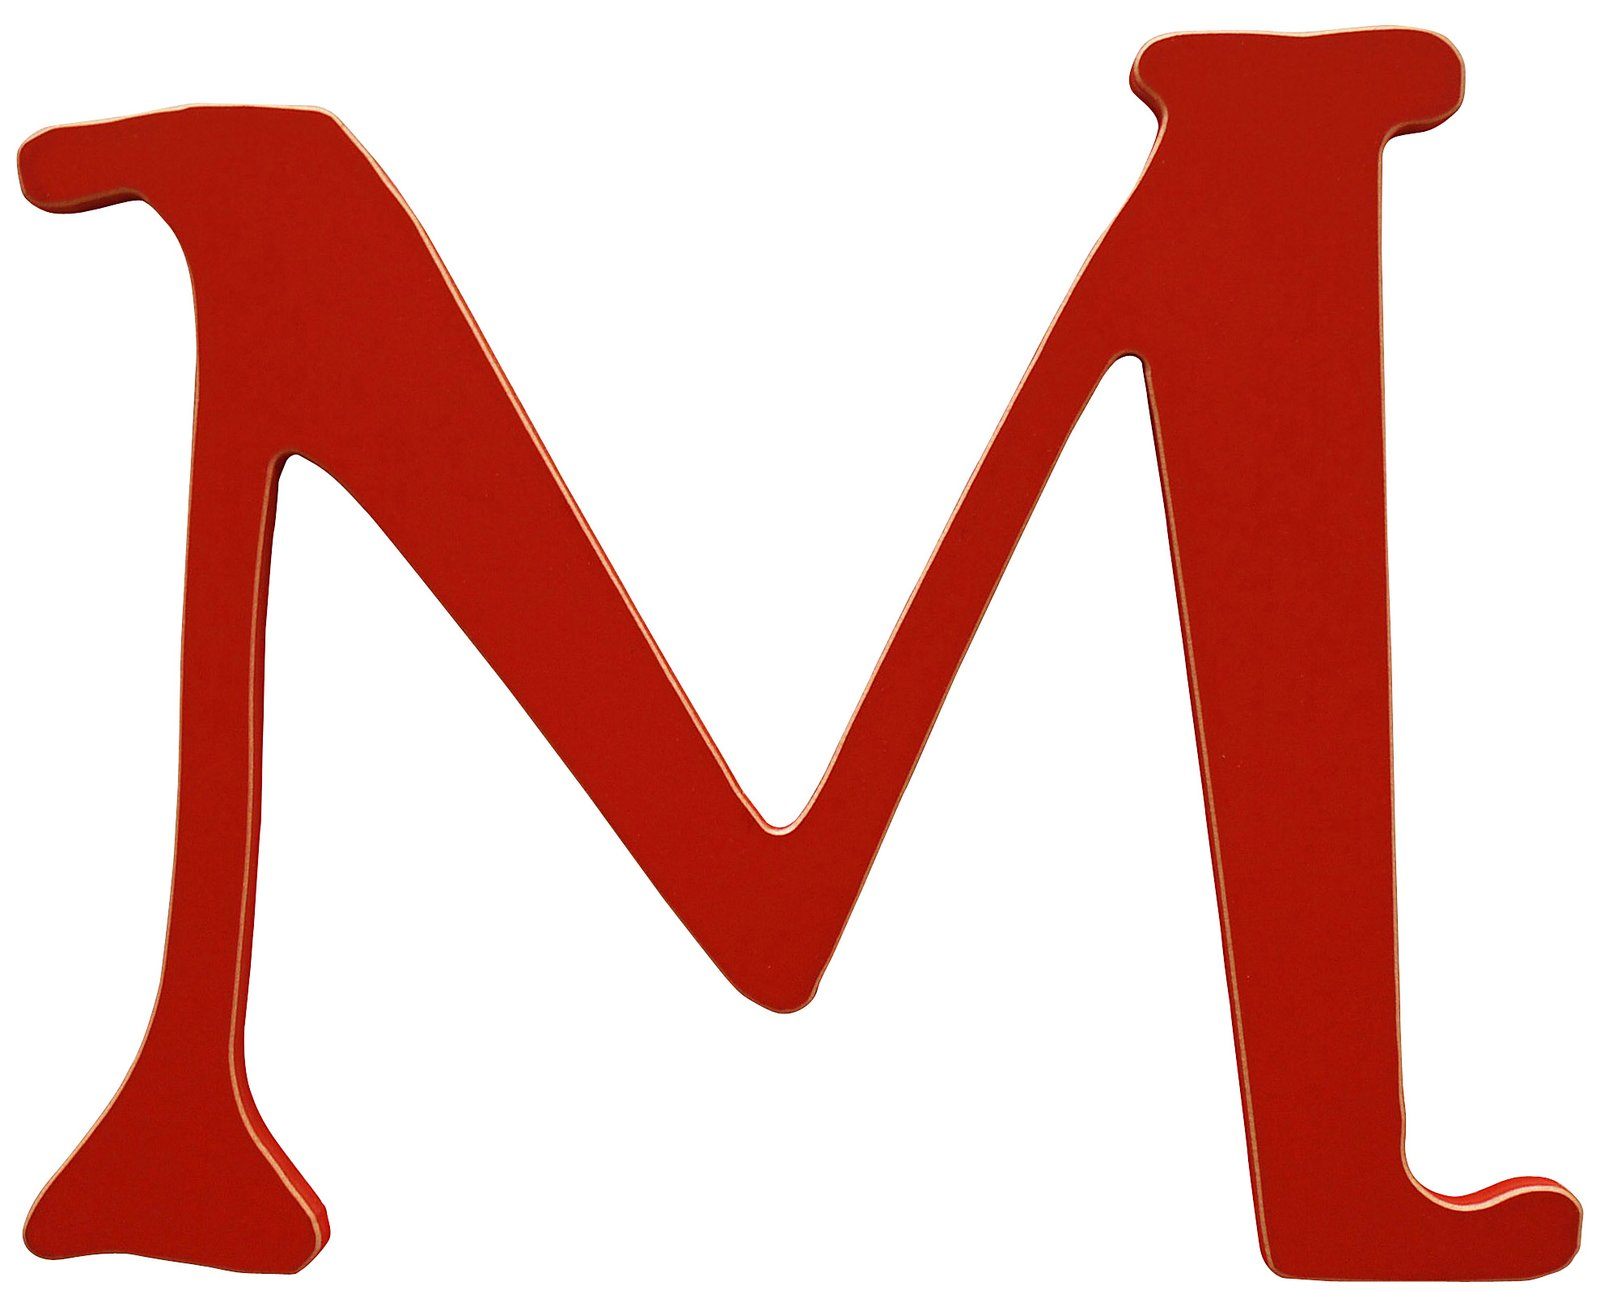 New Arrivals The Letter M Rusty Red Free Shipping Pij5ef